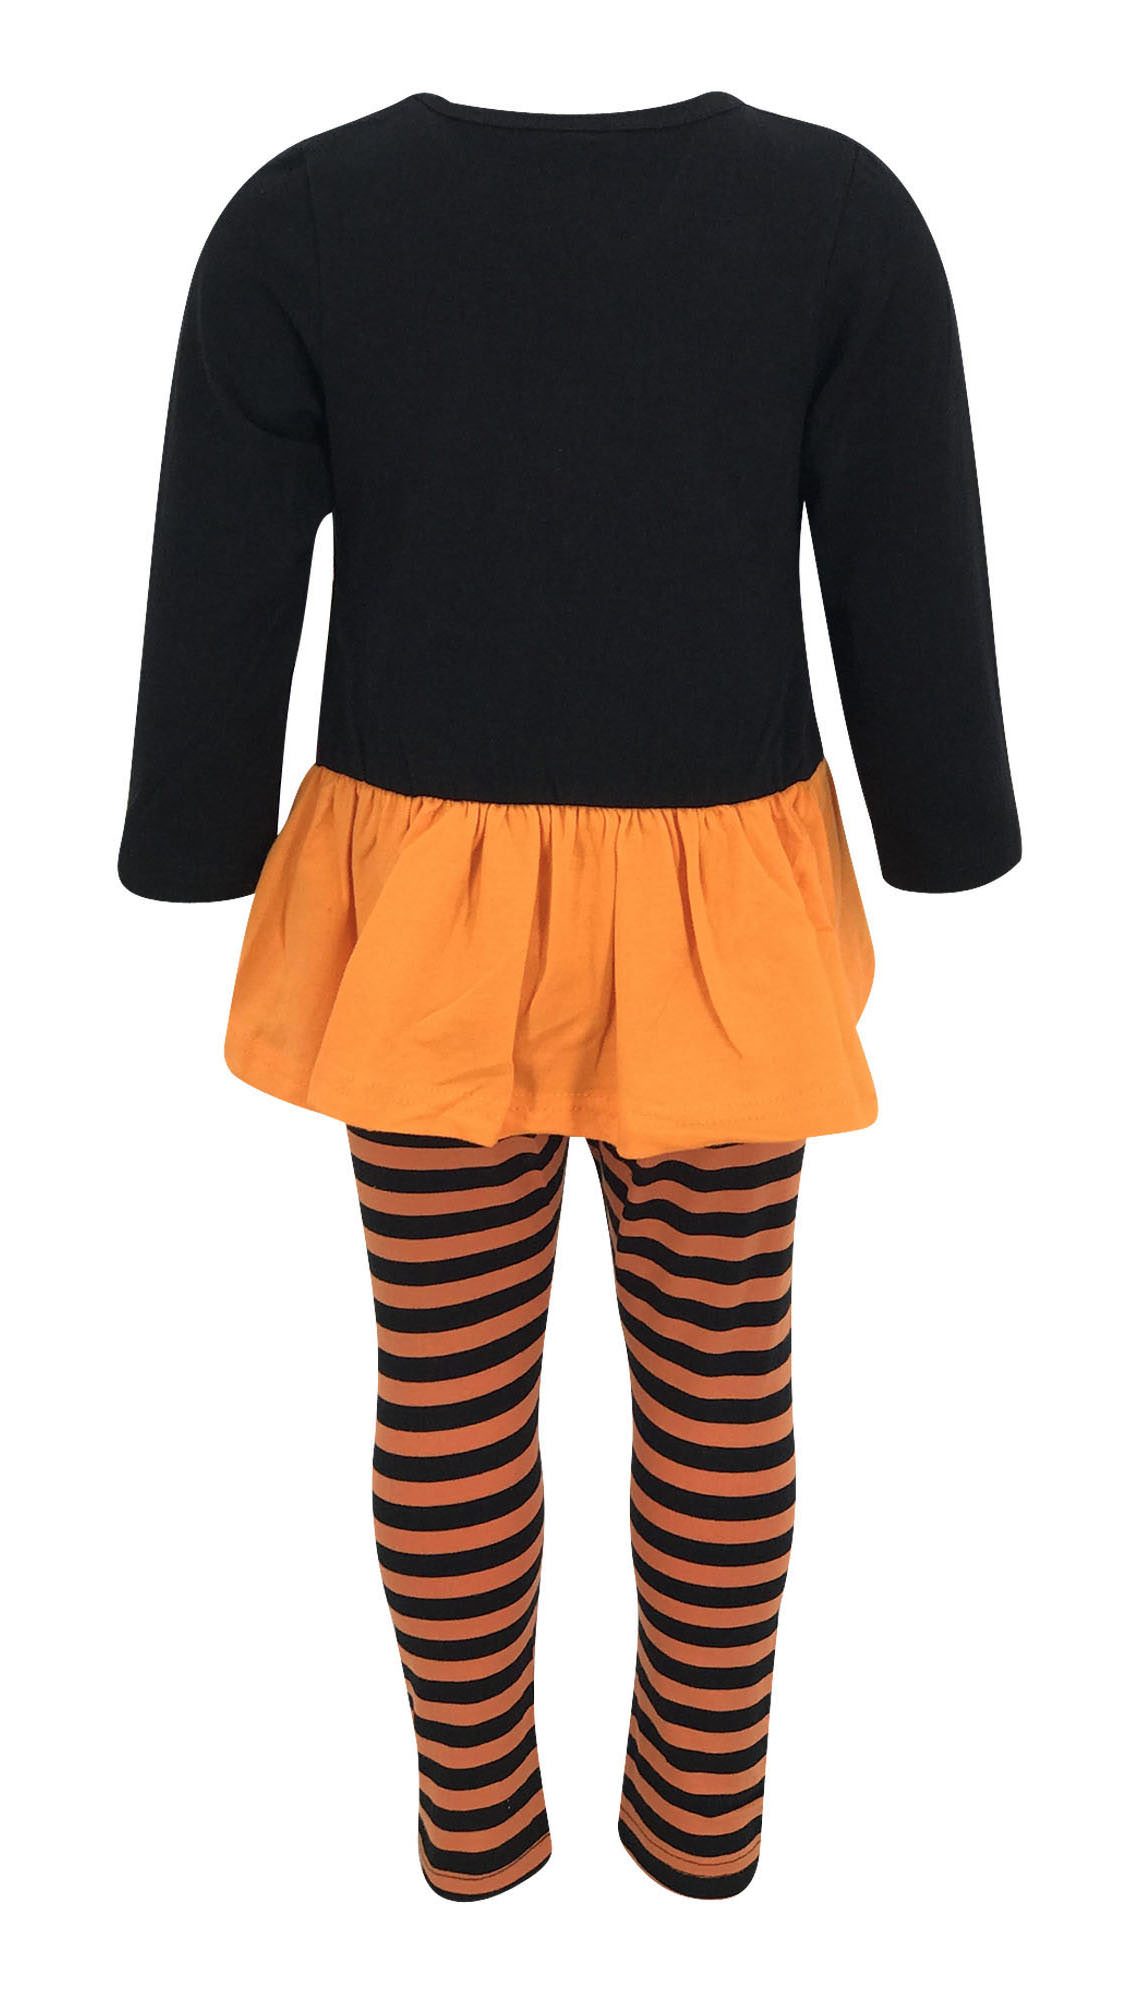 9d349ce50cc6 Girls Cat Halloween Costume Outfit Boutique Toddler Kids Clothes Top ...